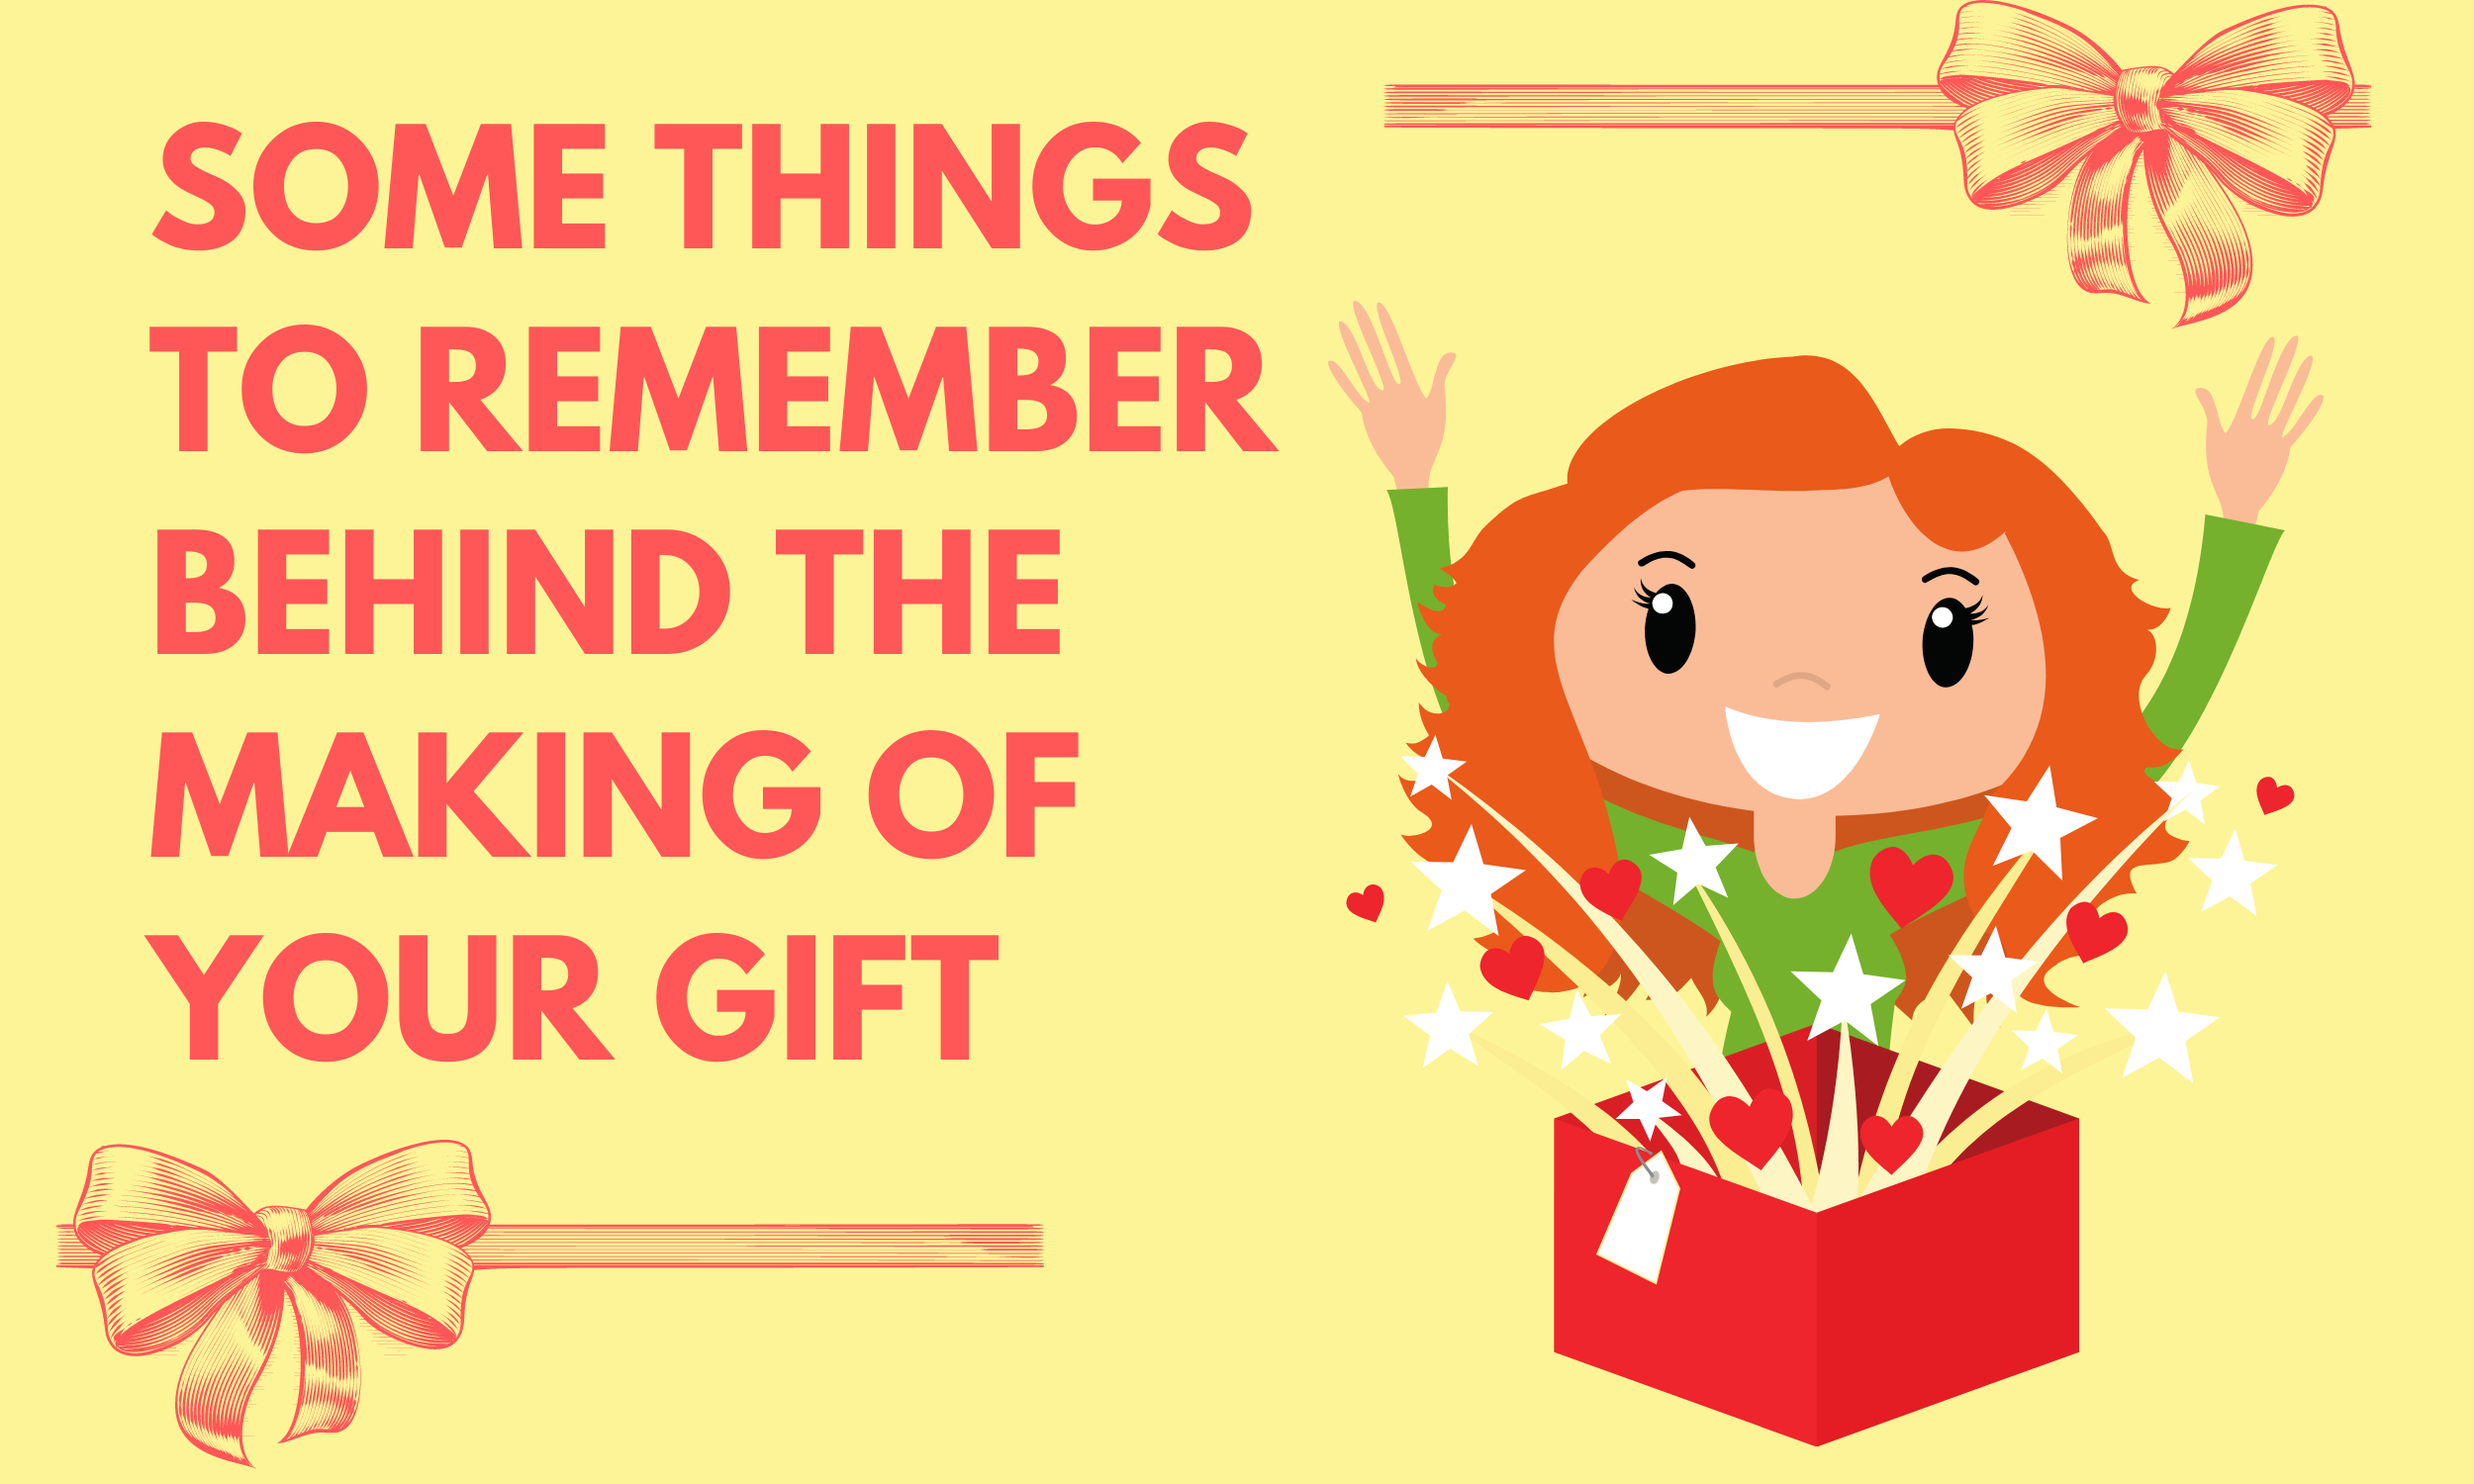 Some-things-to-remember-behind-the-making-of-your-gift